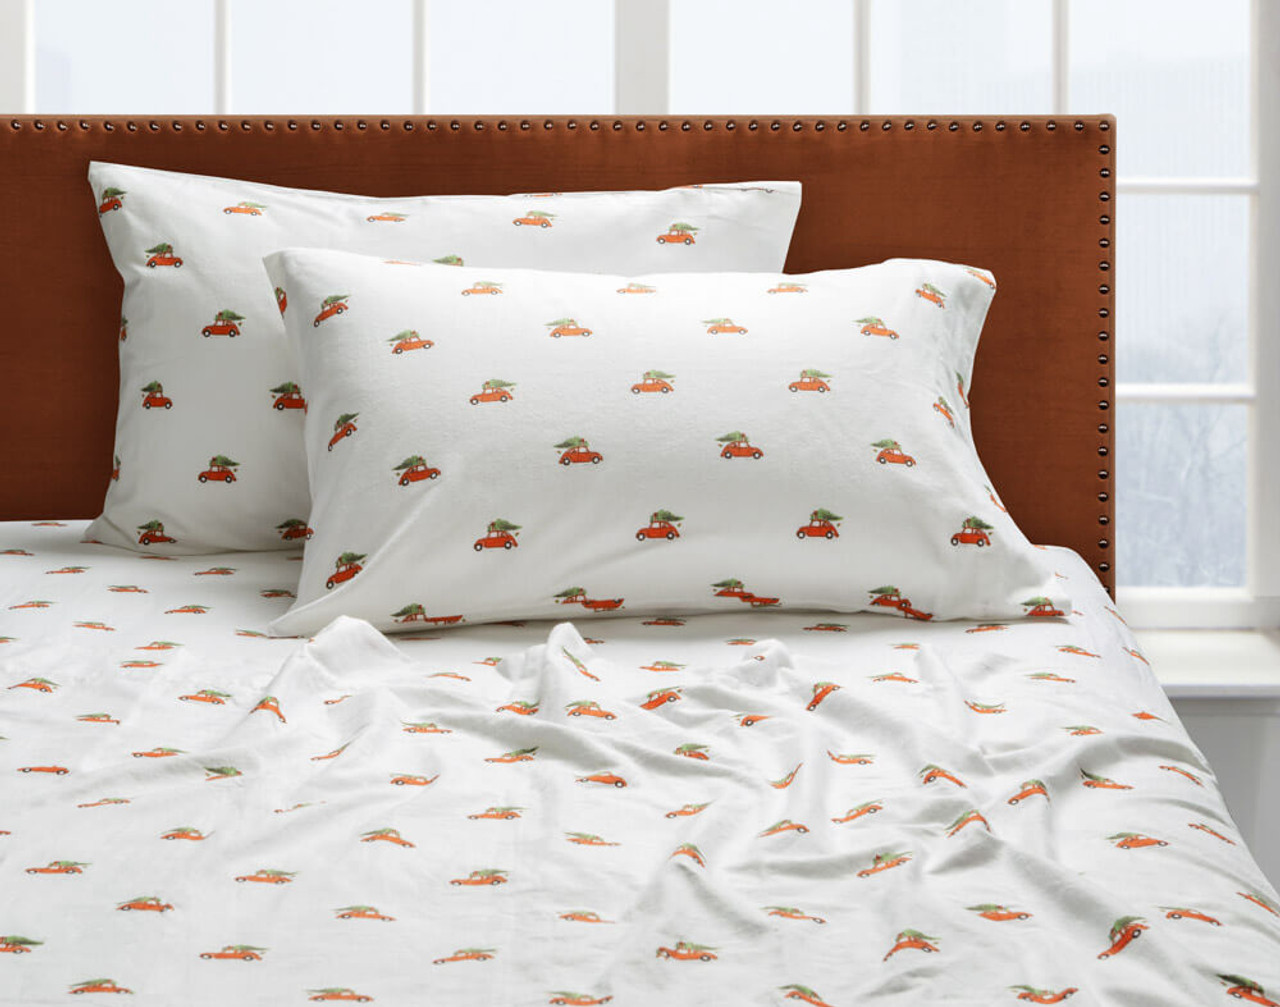 Our Flannel Cotton Sheet Set in Festive Ride dressed over a twin bed.